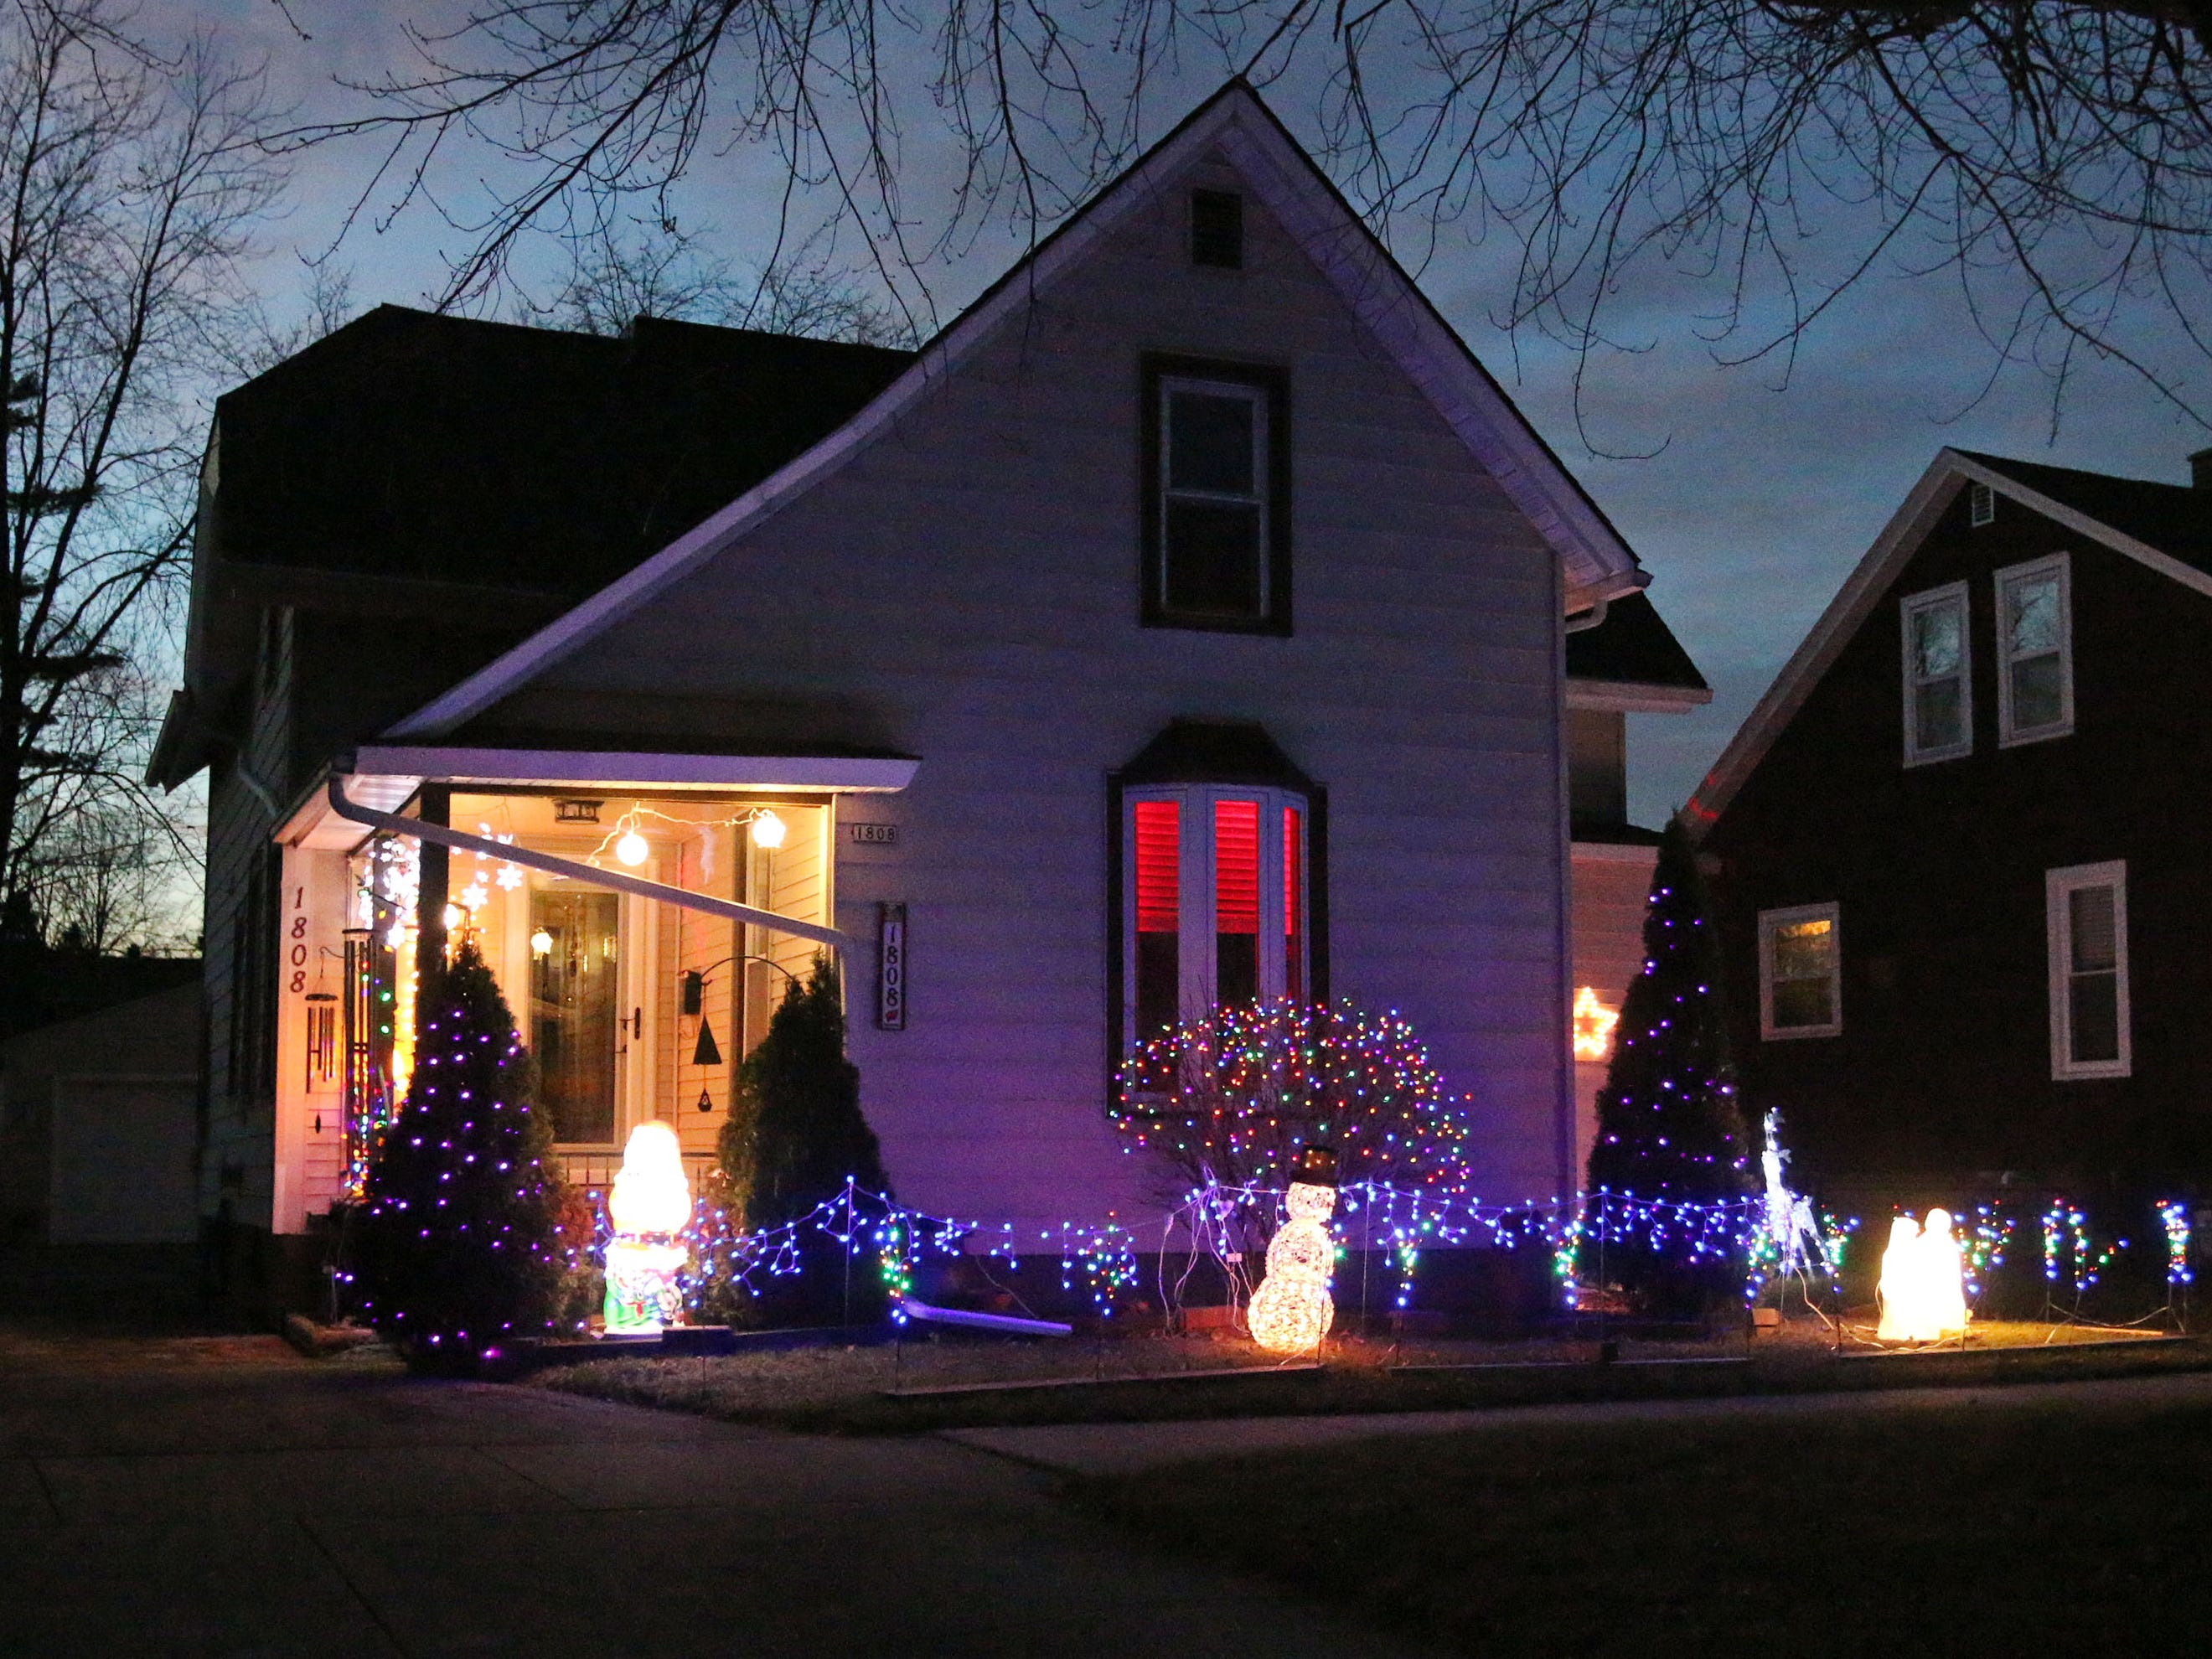 Colors and hues show off this North 2nd Street home, Tuesday, December 18, 2108, in Sheboygan, Wis.